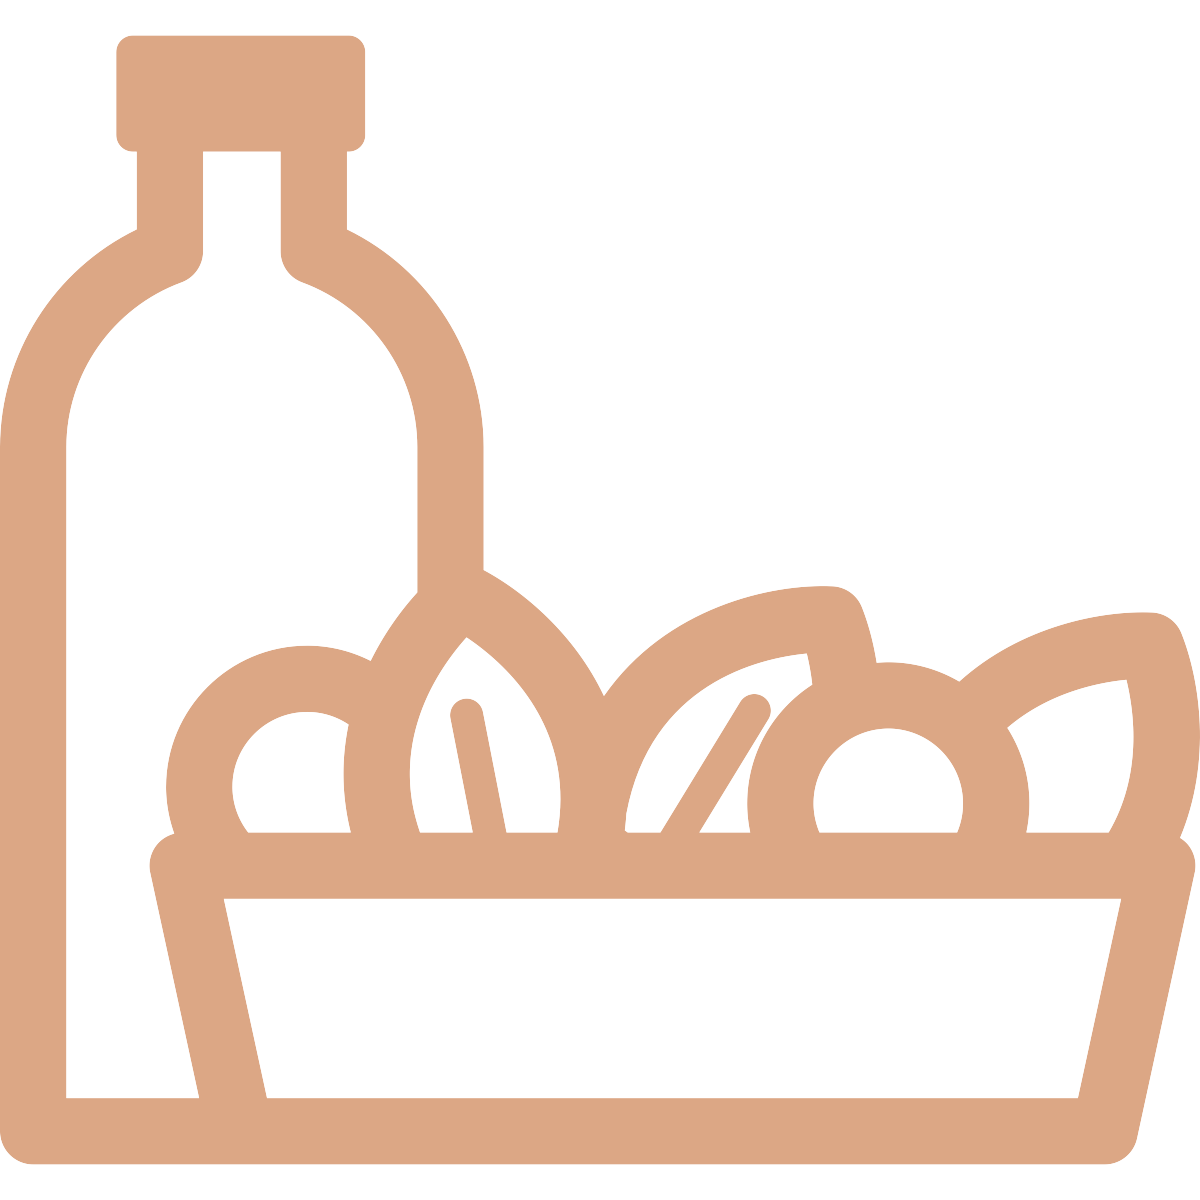 Food and drink essentials - Twice weekly delivery of tea, coffee, milk, bread, pasta and more